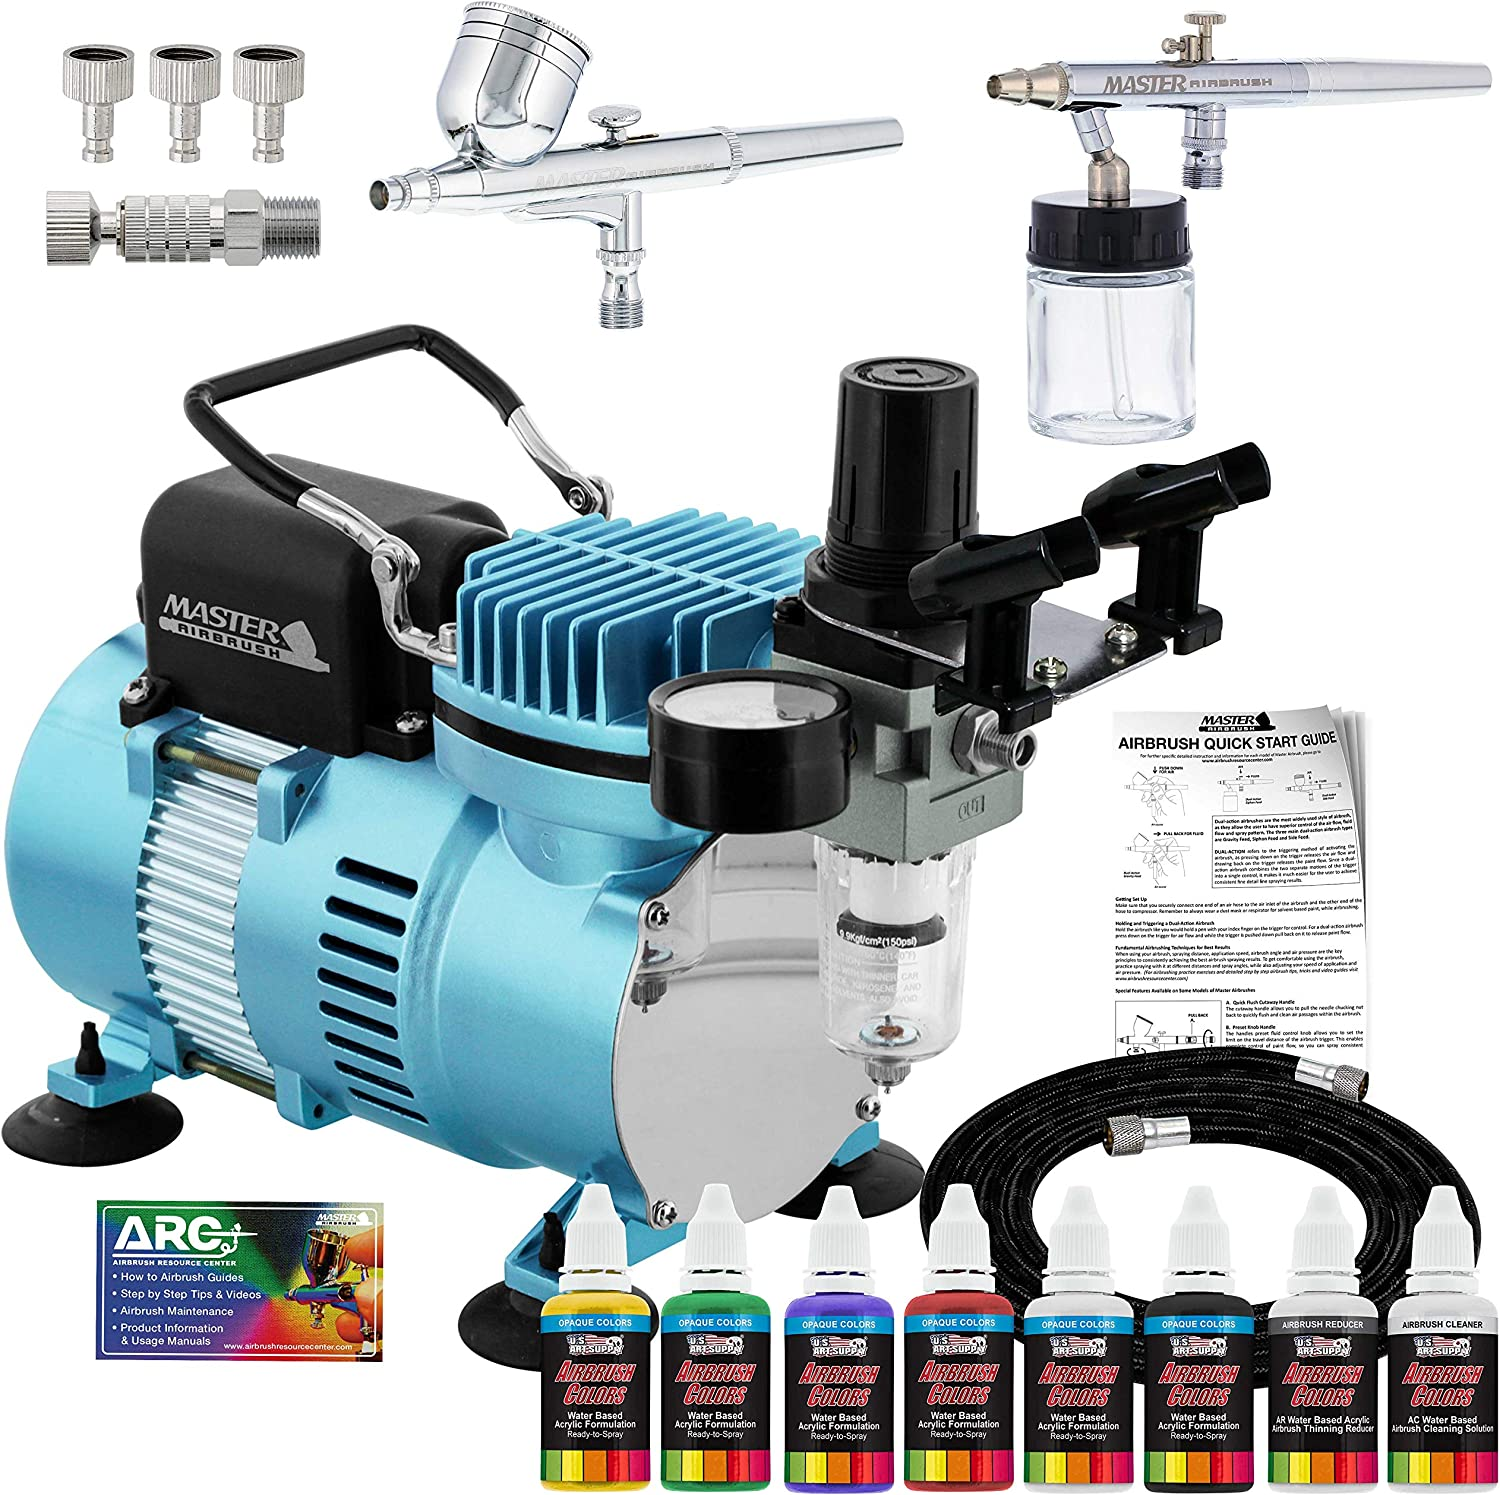 Master Airbrush Cool Runner II Dual Fan Air Compressor Airbrushing System Kit with 2 Professional Airbrushes, Gravity and Siphon Feed - 6 Primary Opaque Colors Acrylic Paint Artist Set - How to Guide